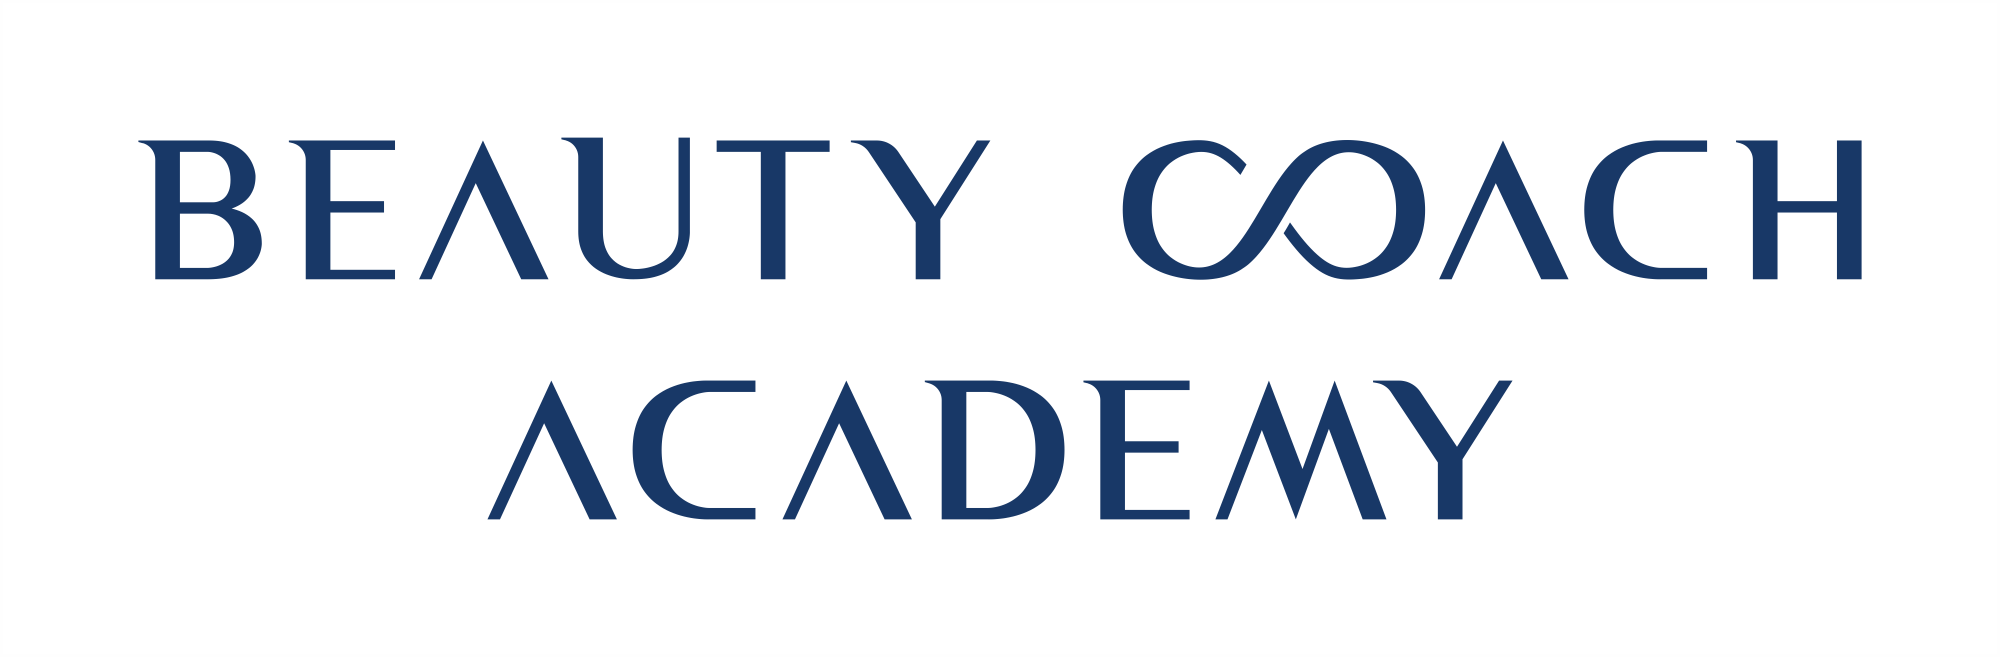 Beauty Coach Academy